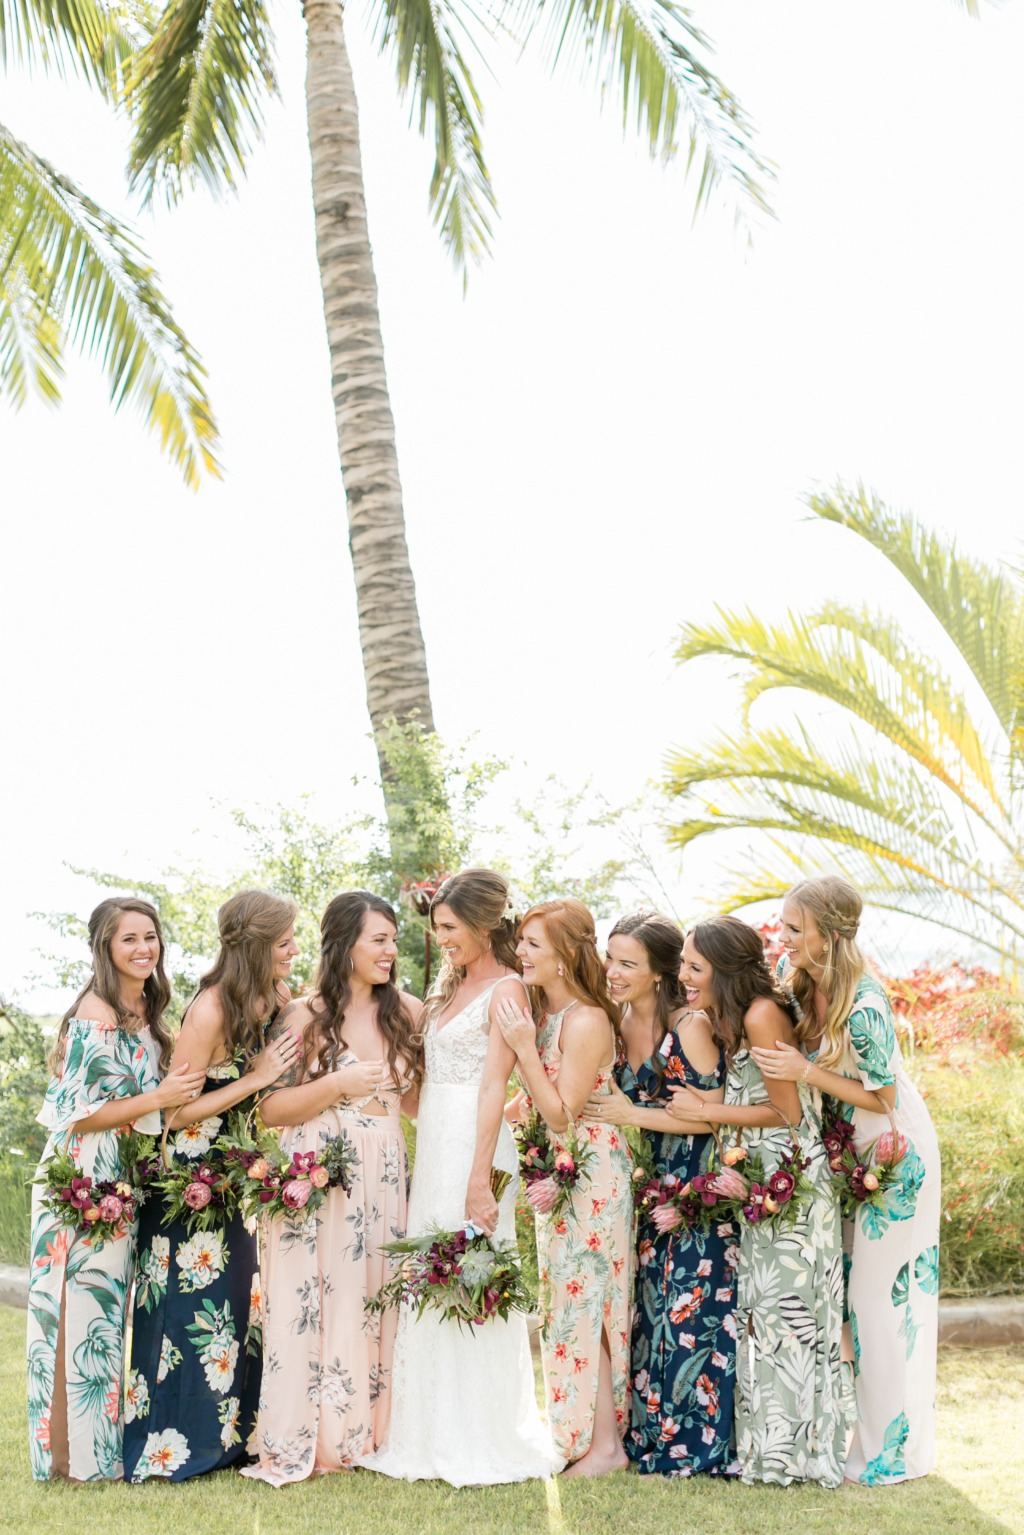 Photo by Caitlin Cathey Photography | Maui Wedding Photographer | Maui Weddings | Luxury Hawaiian Wedding | Beach Wedding | Botanical